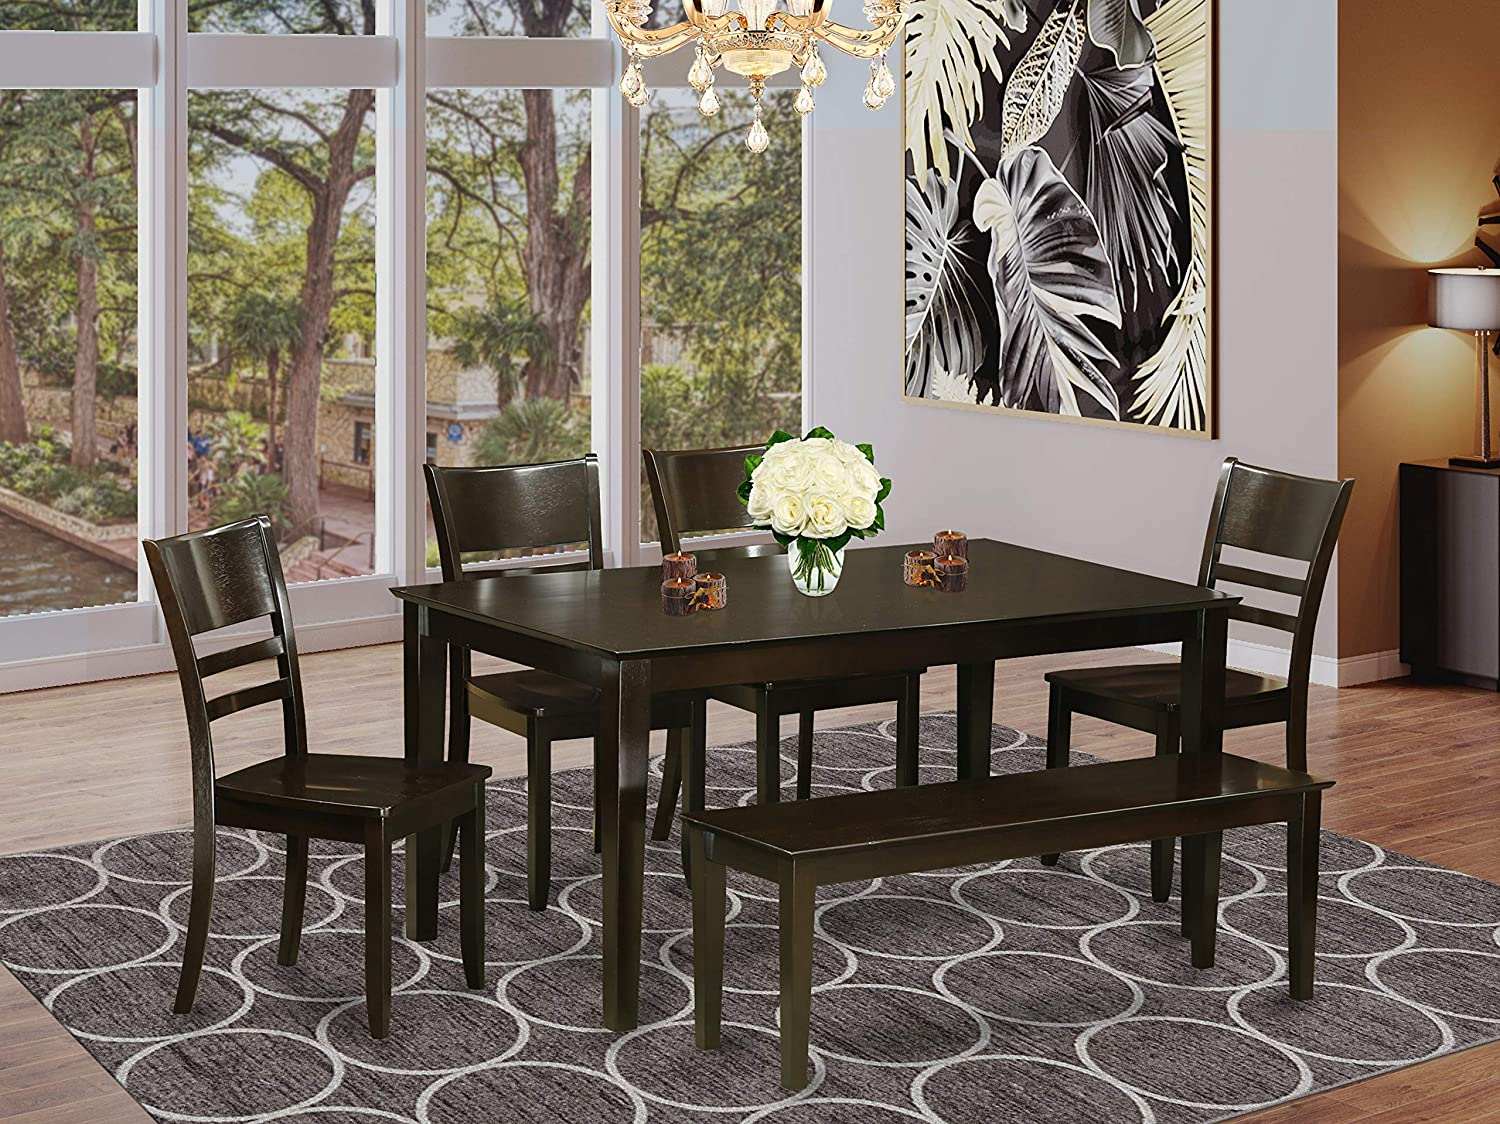 Wooden Dining Chairs Seat, Kitchen And Dining Room Tables